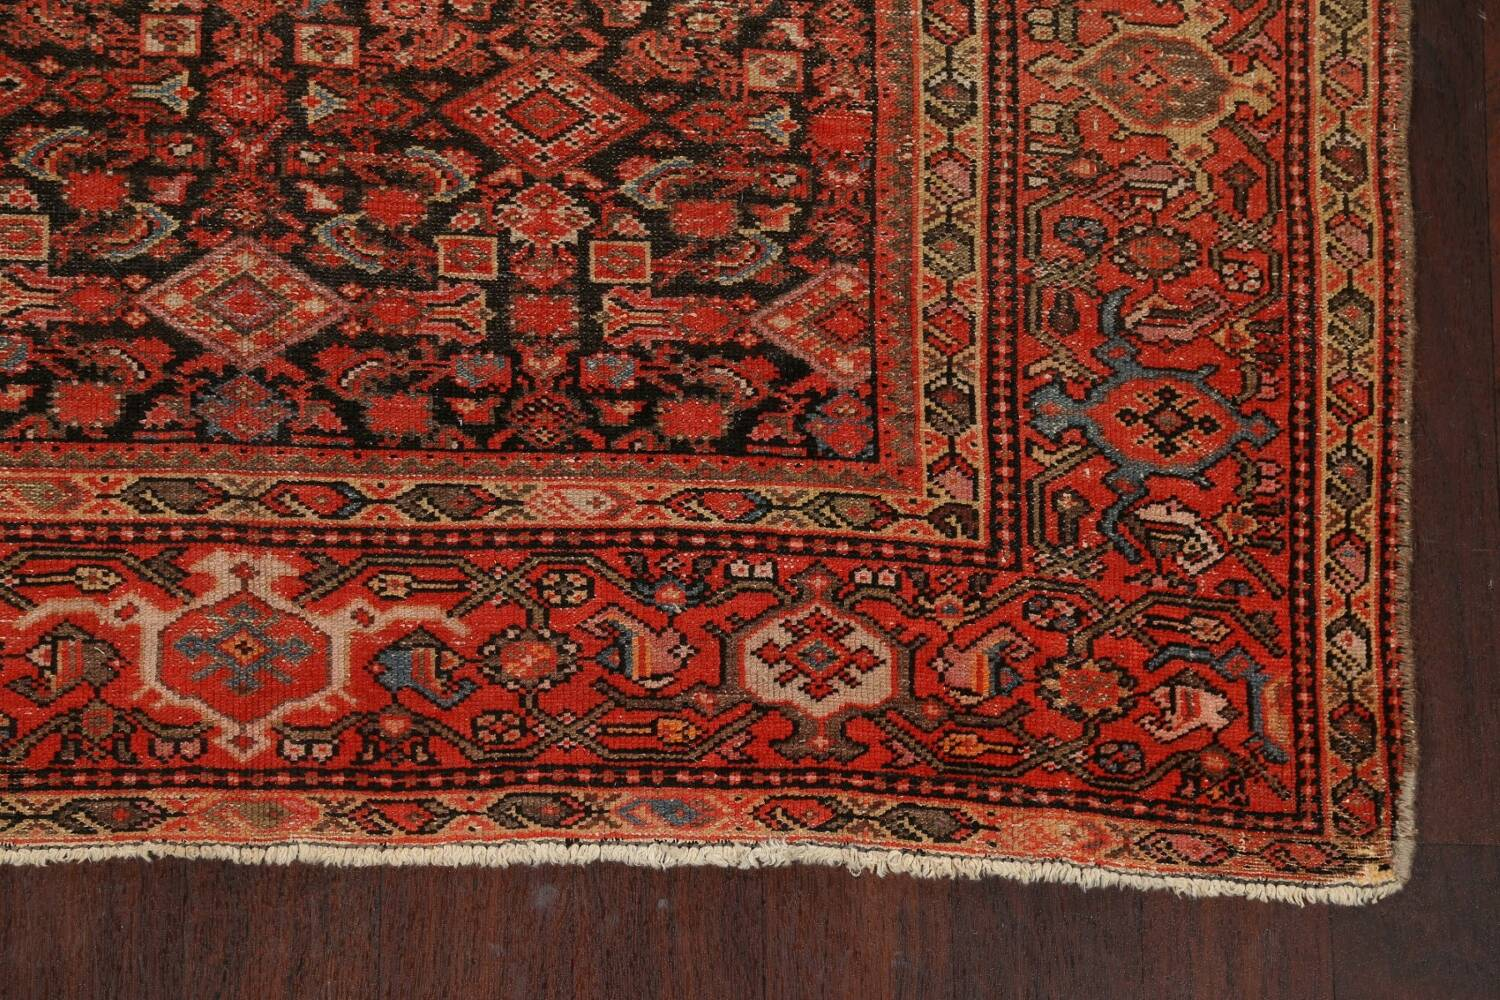 Pre-1900 Antique Vegetable Dye Malayer Persian Area Rug 5x10 image 5